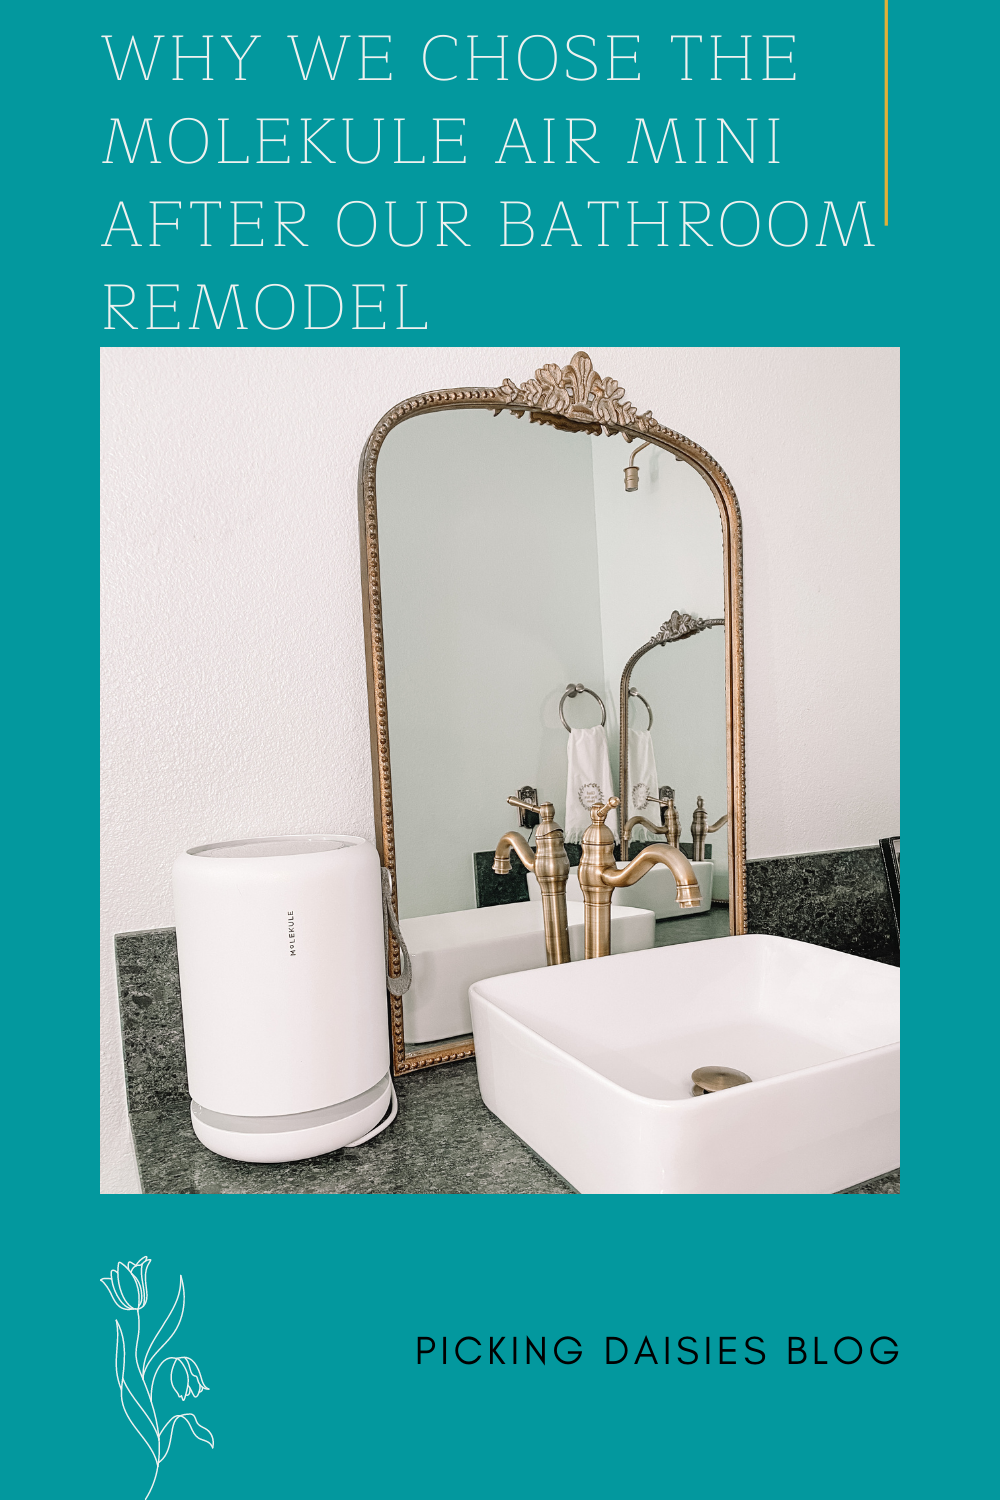 Why We Chose The Molekule Air Mini After Our Bathroom Remodel